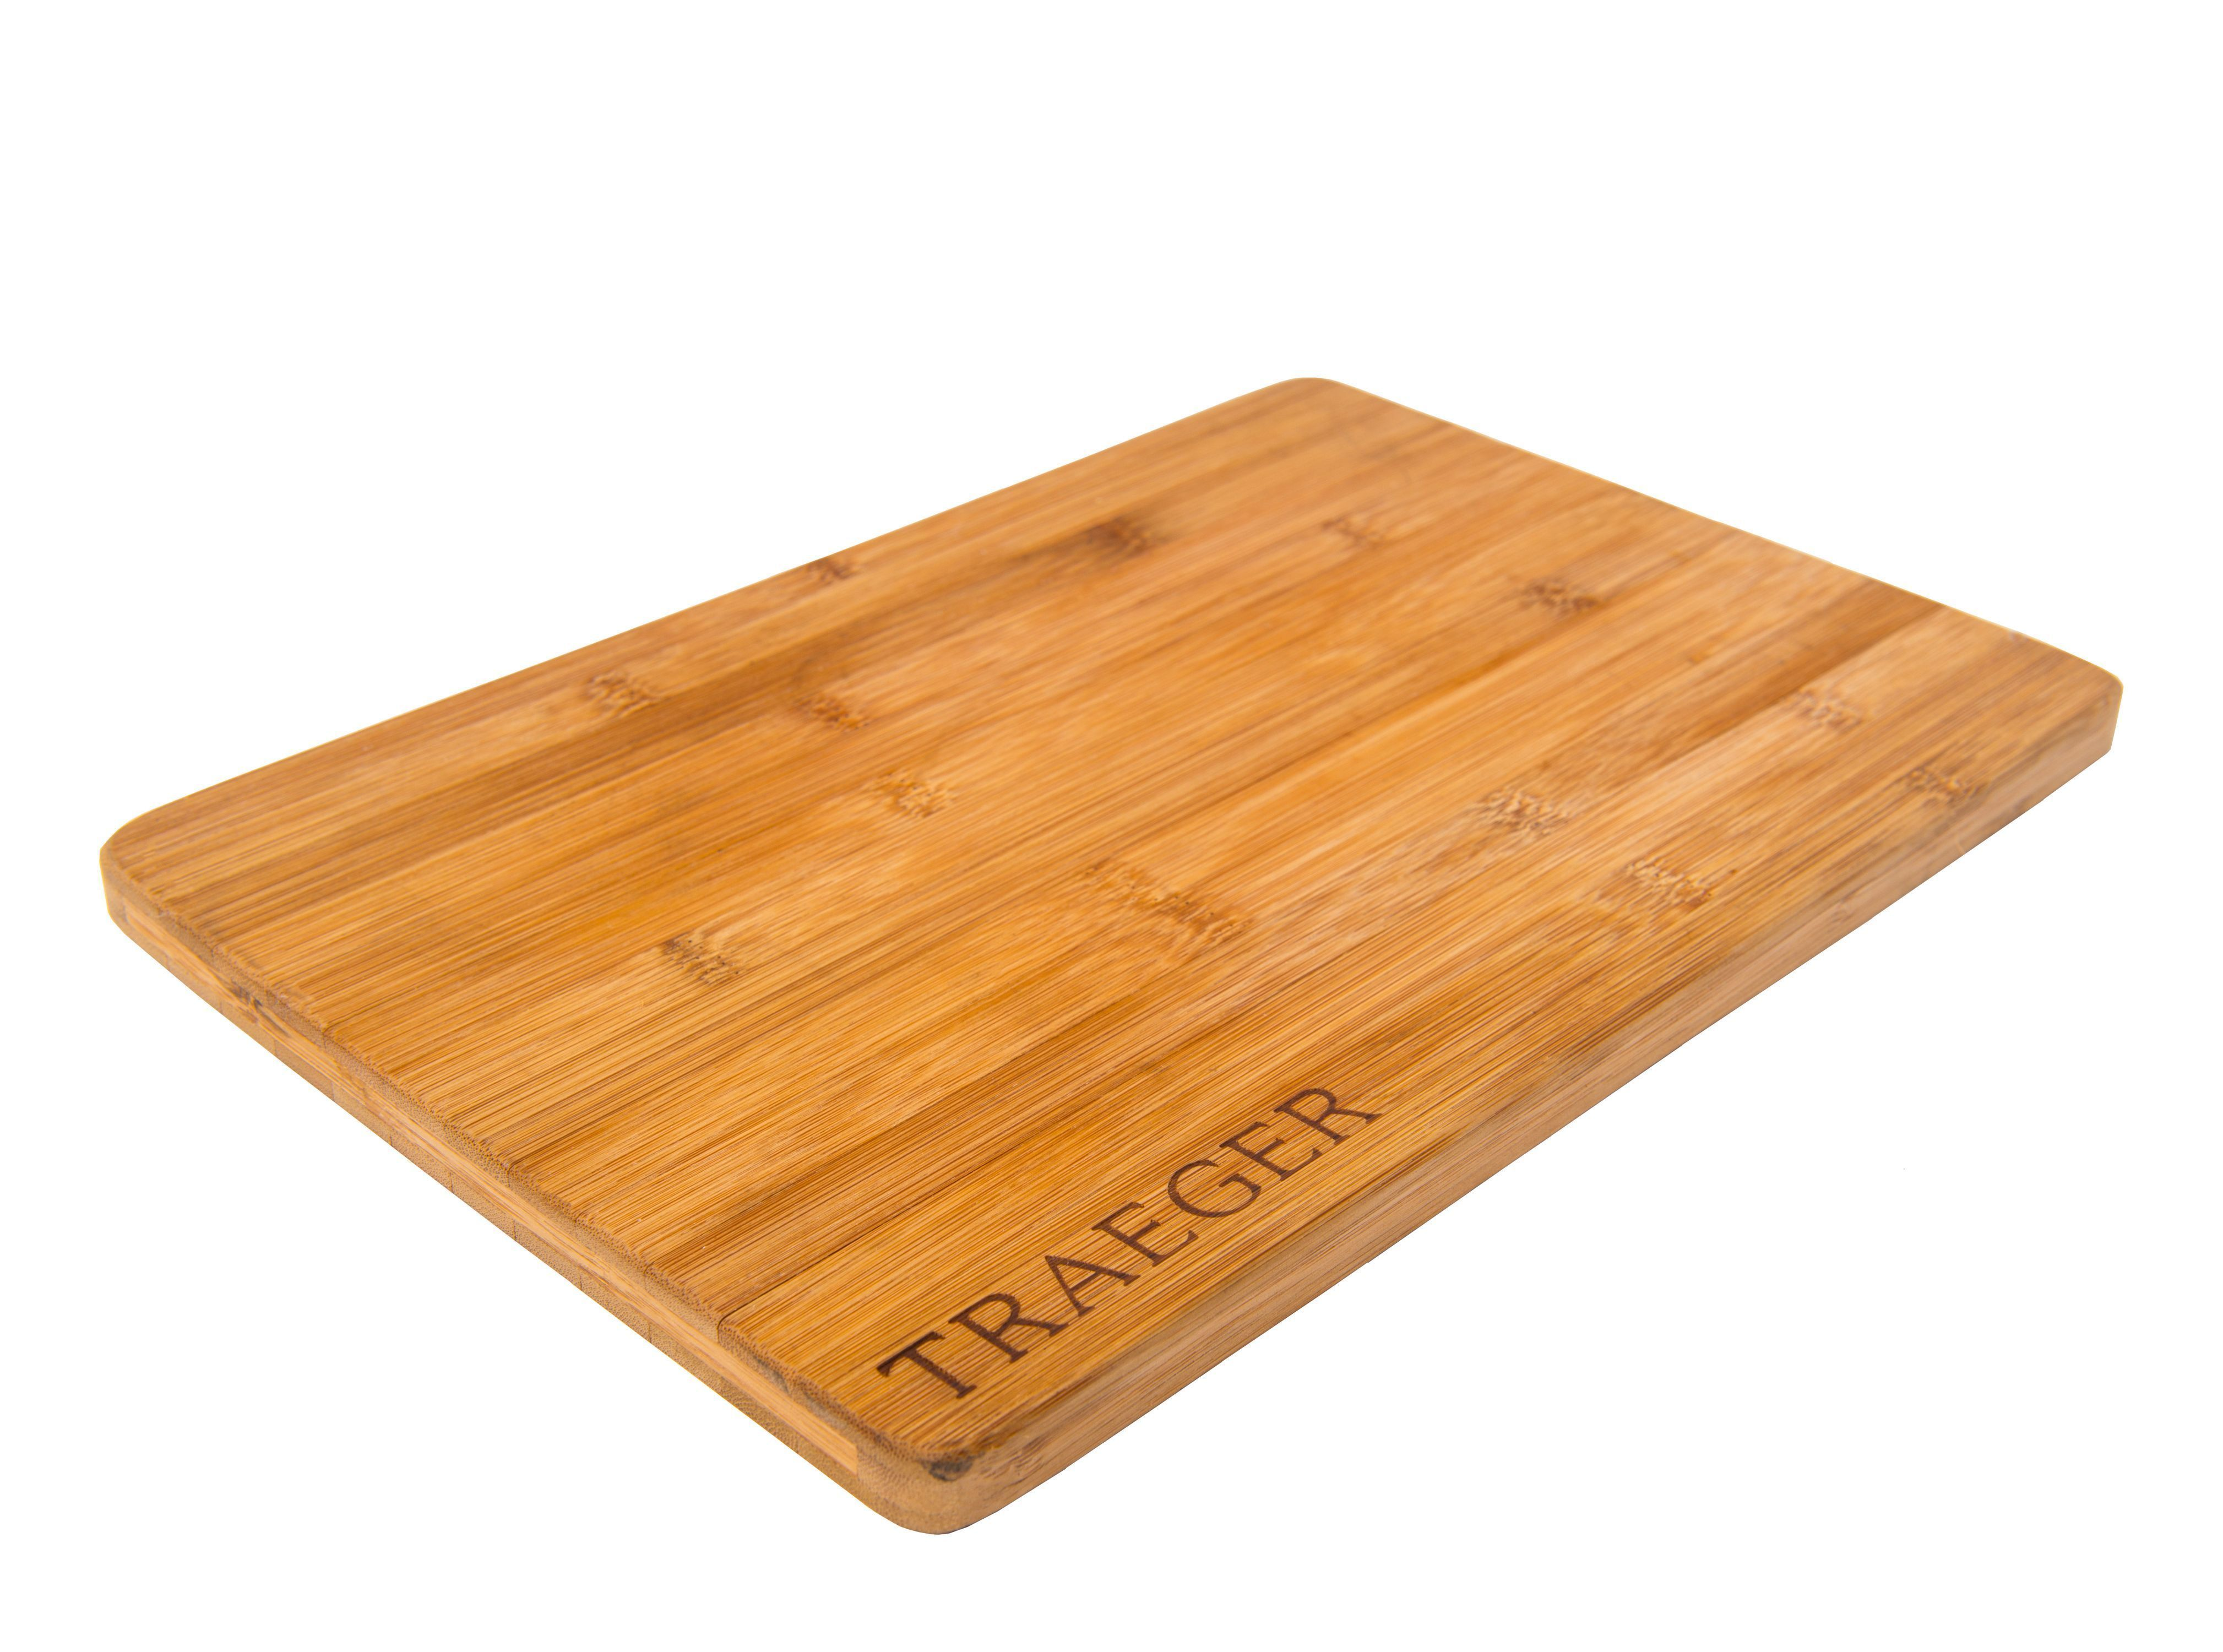 Traeger | Bamboo Cutting Board Magnetic